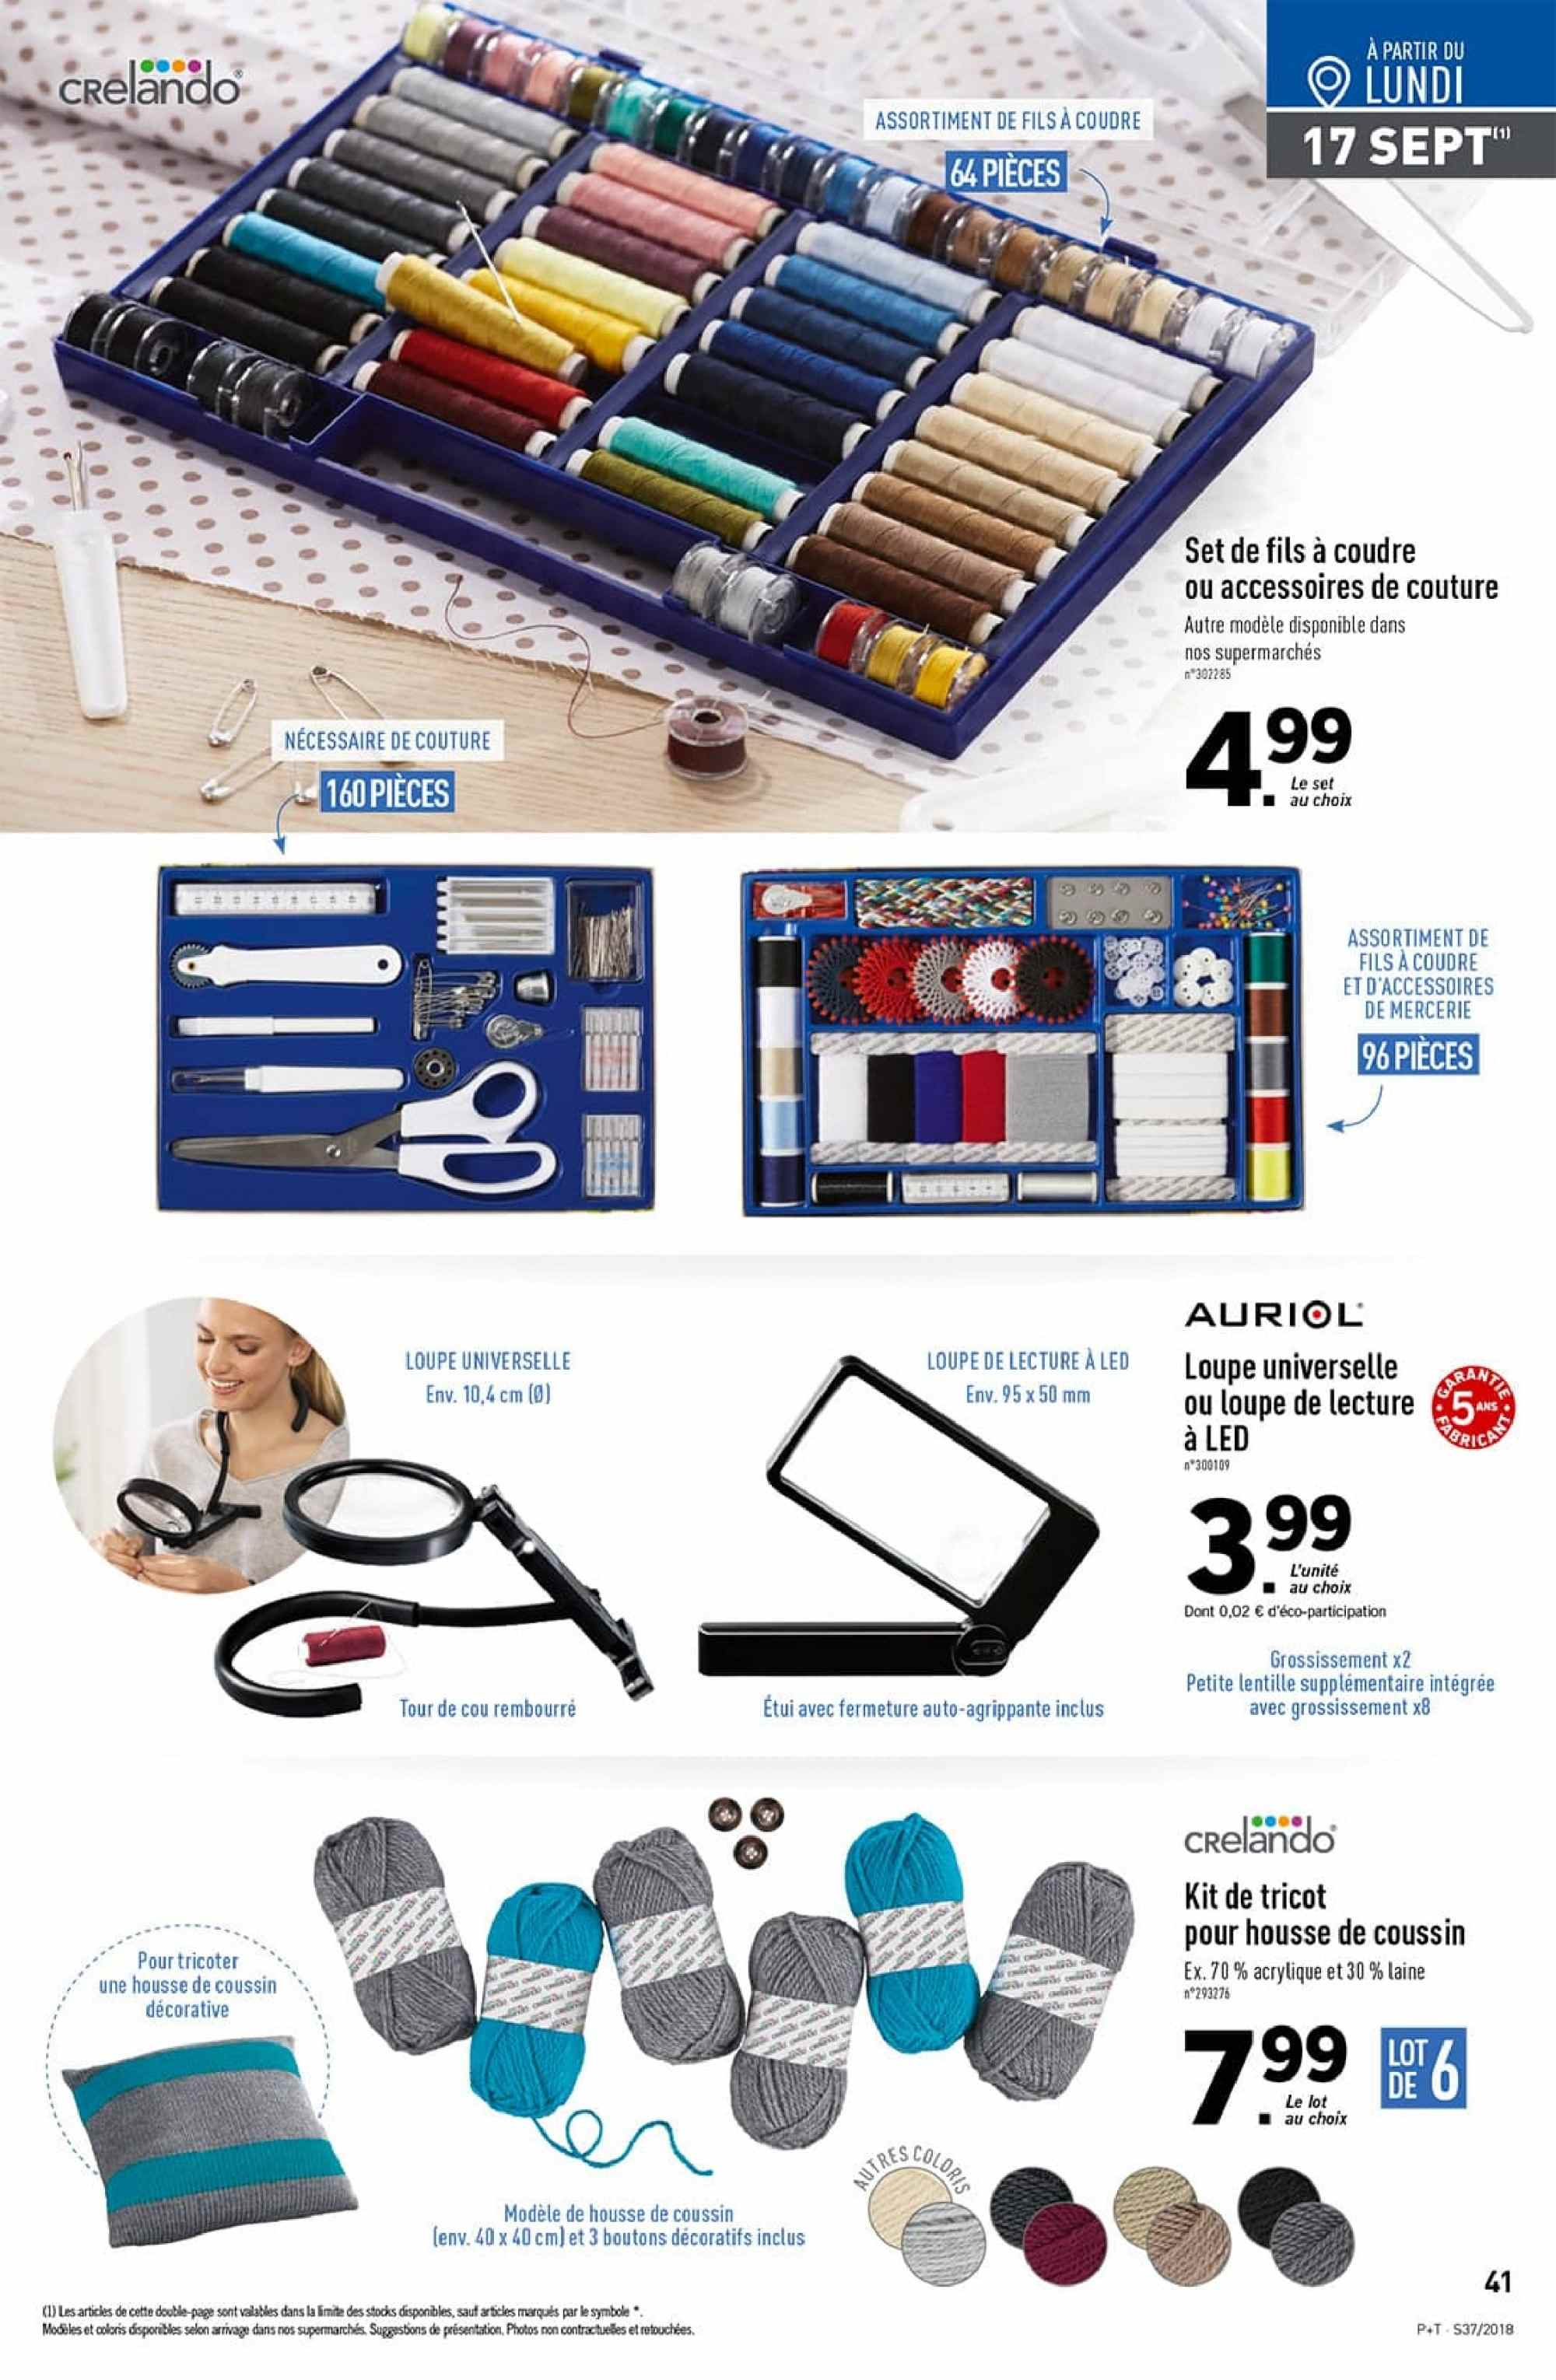 Catalogue Lidl - 12.09.2018 - 18.09.2018. Page 41.